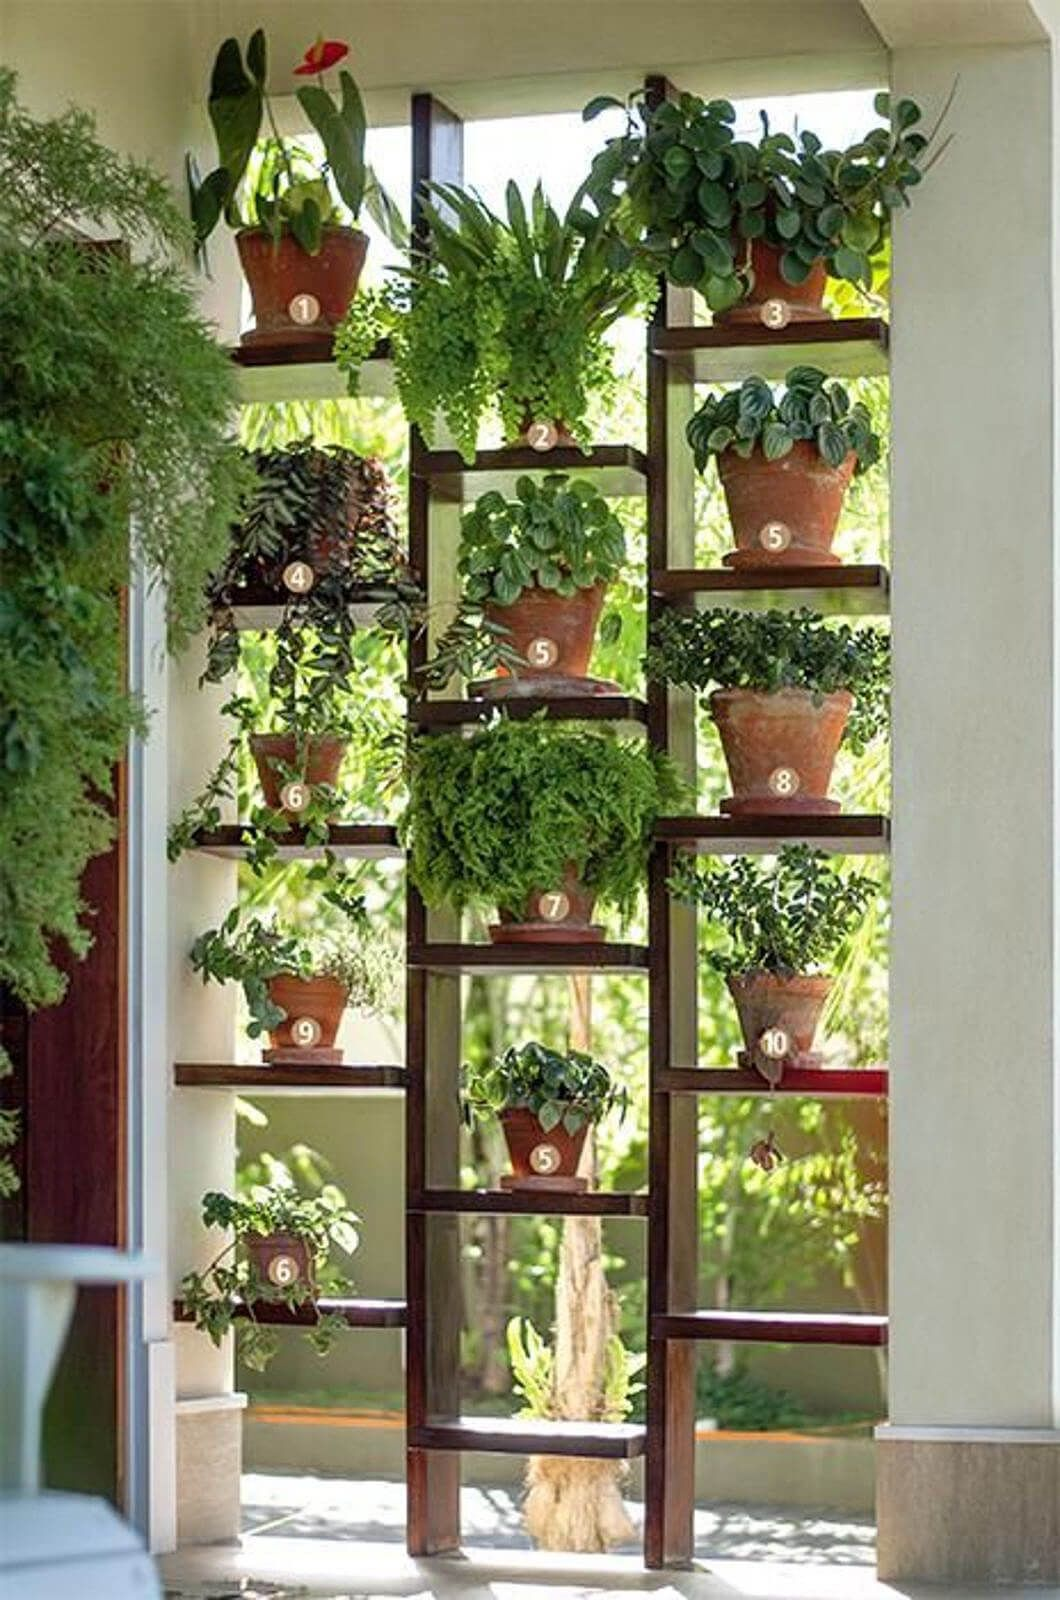 25+ Creative Herb Garden Ideas for Indoors and Outdoors | Pinterest ...